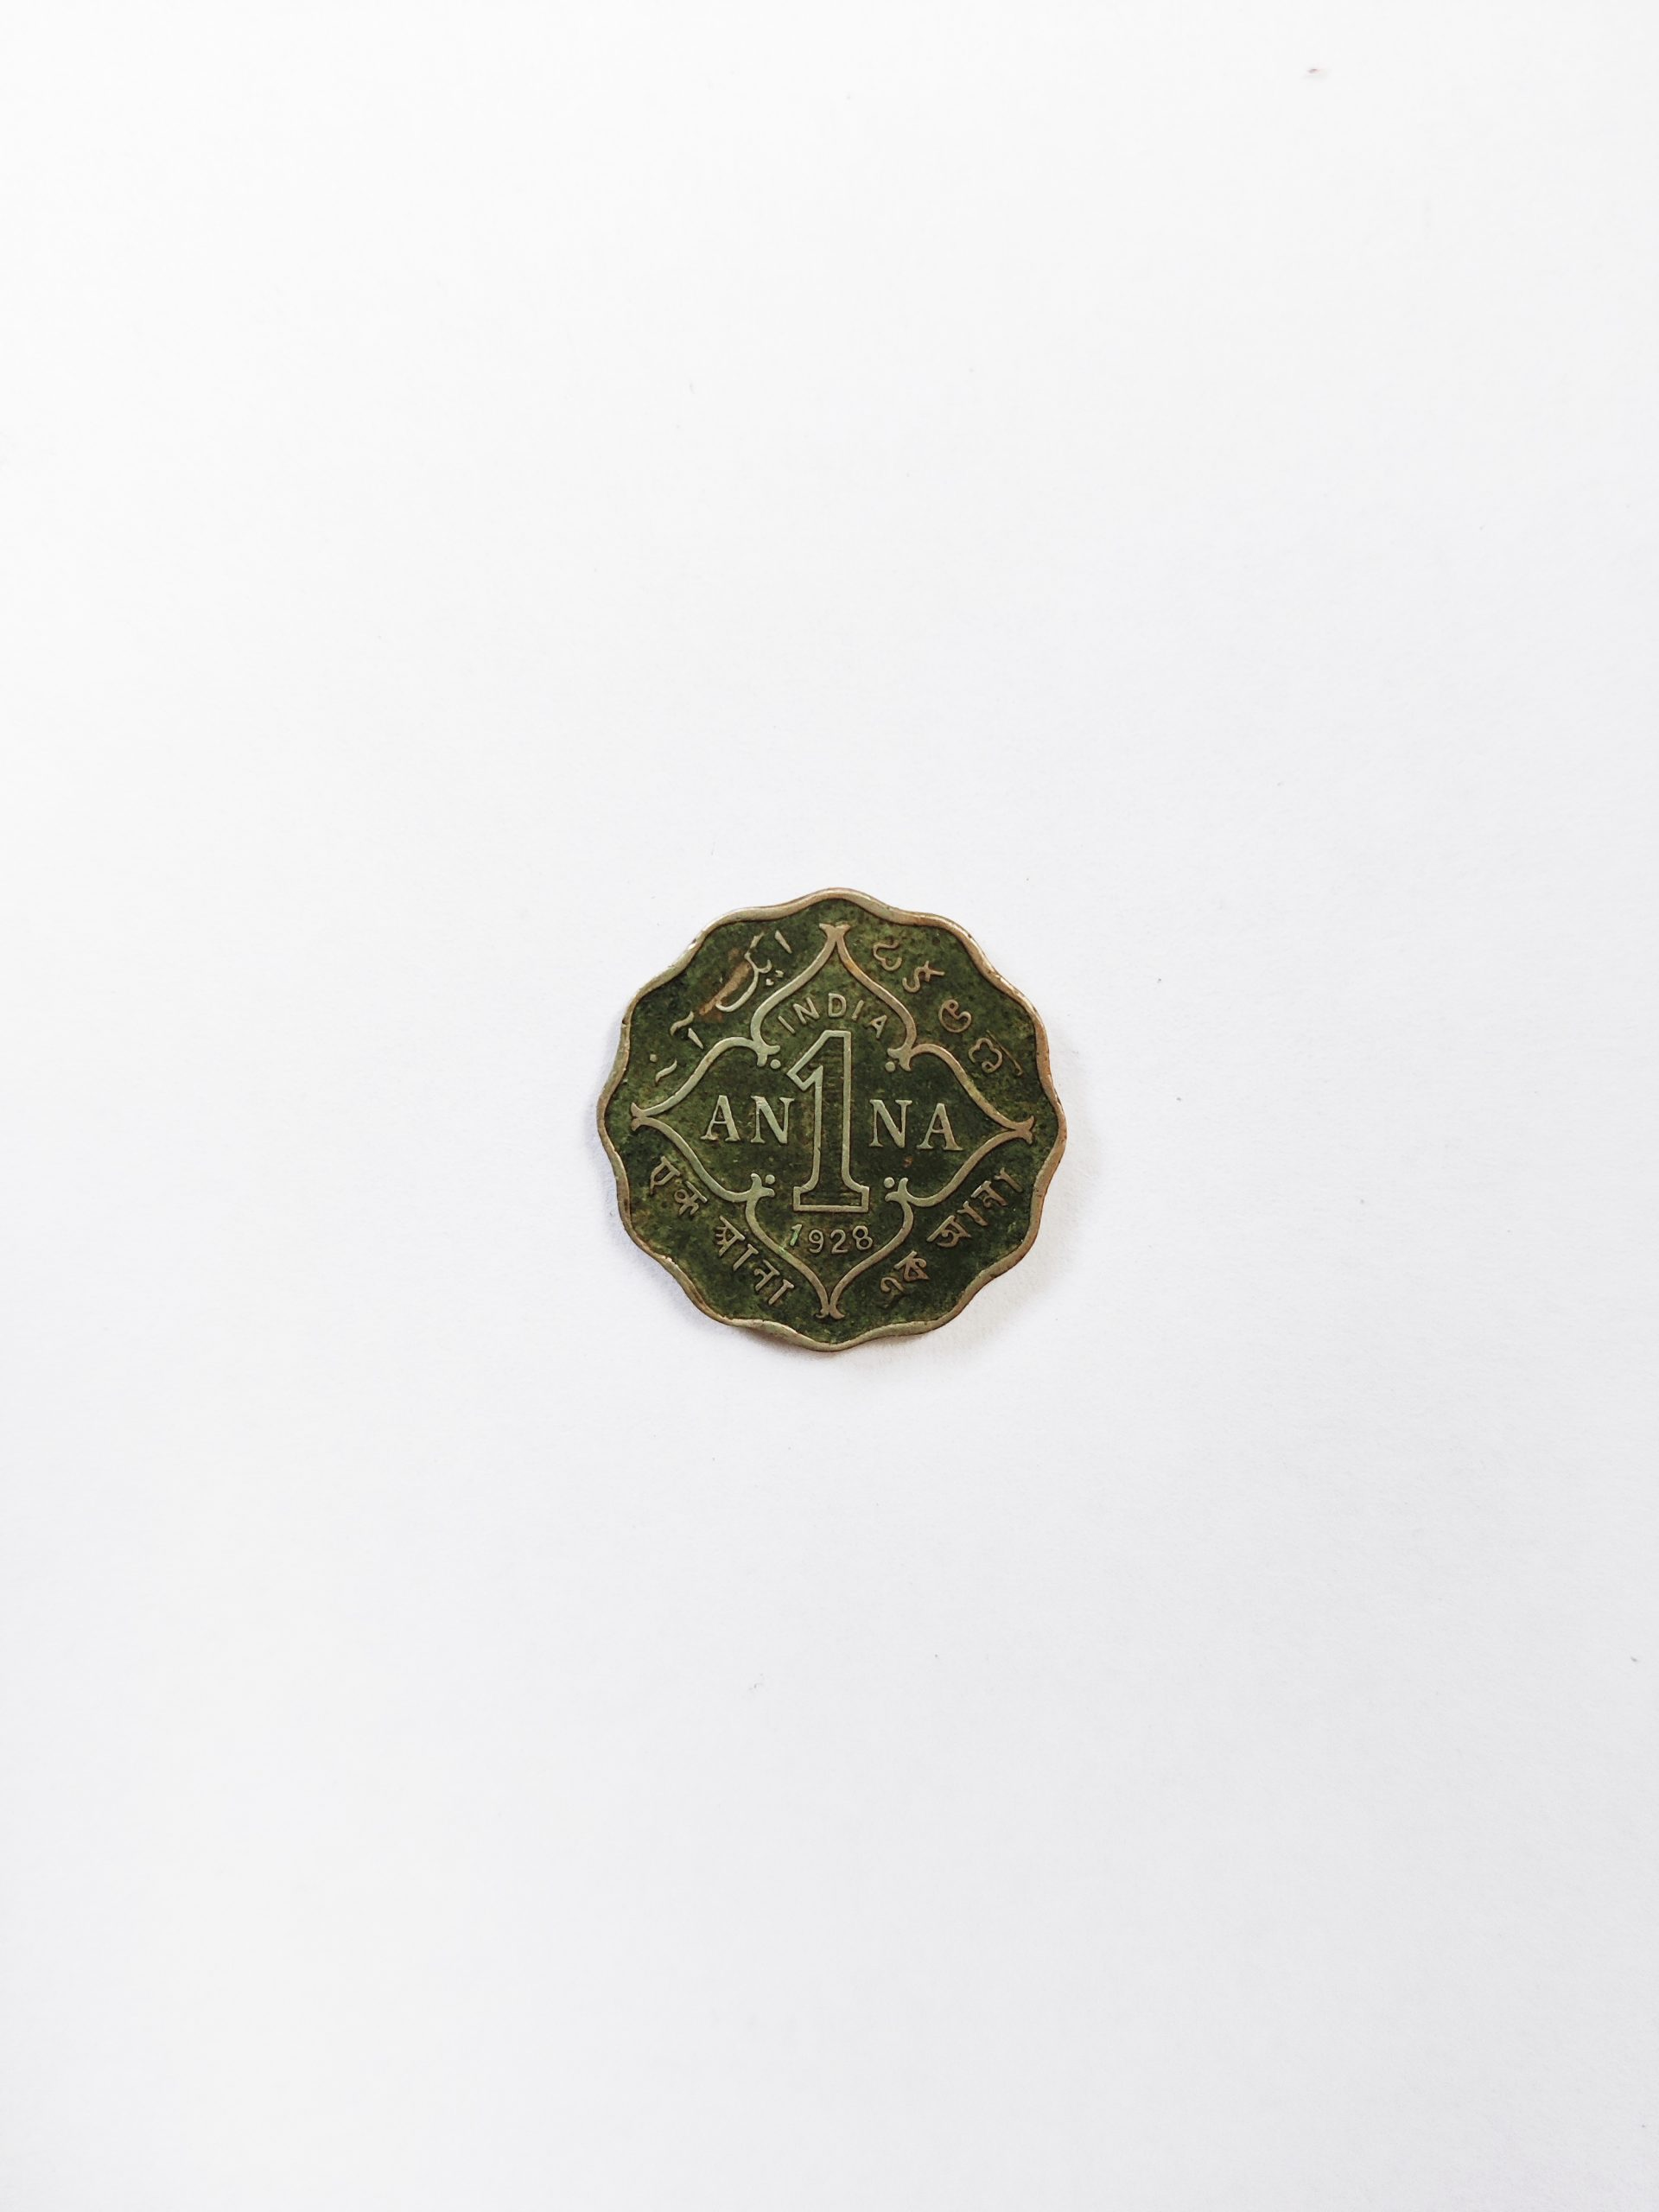 1 Anna coin old India currency